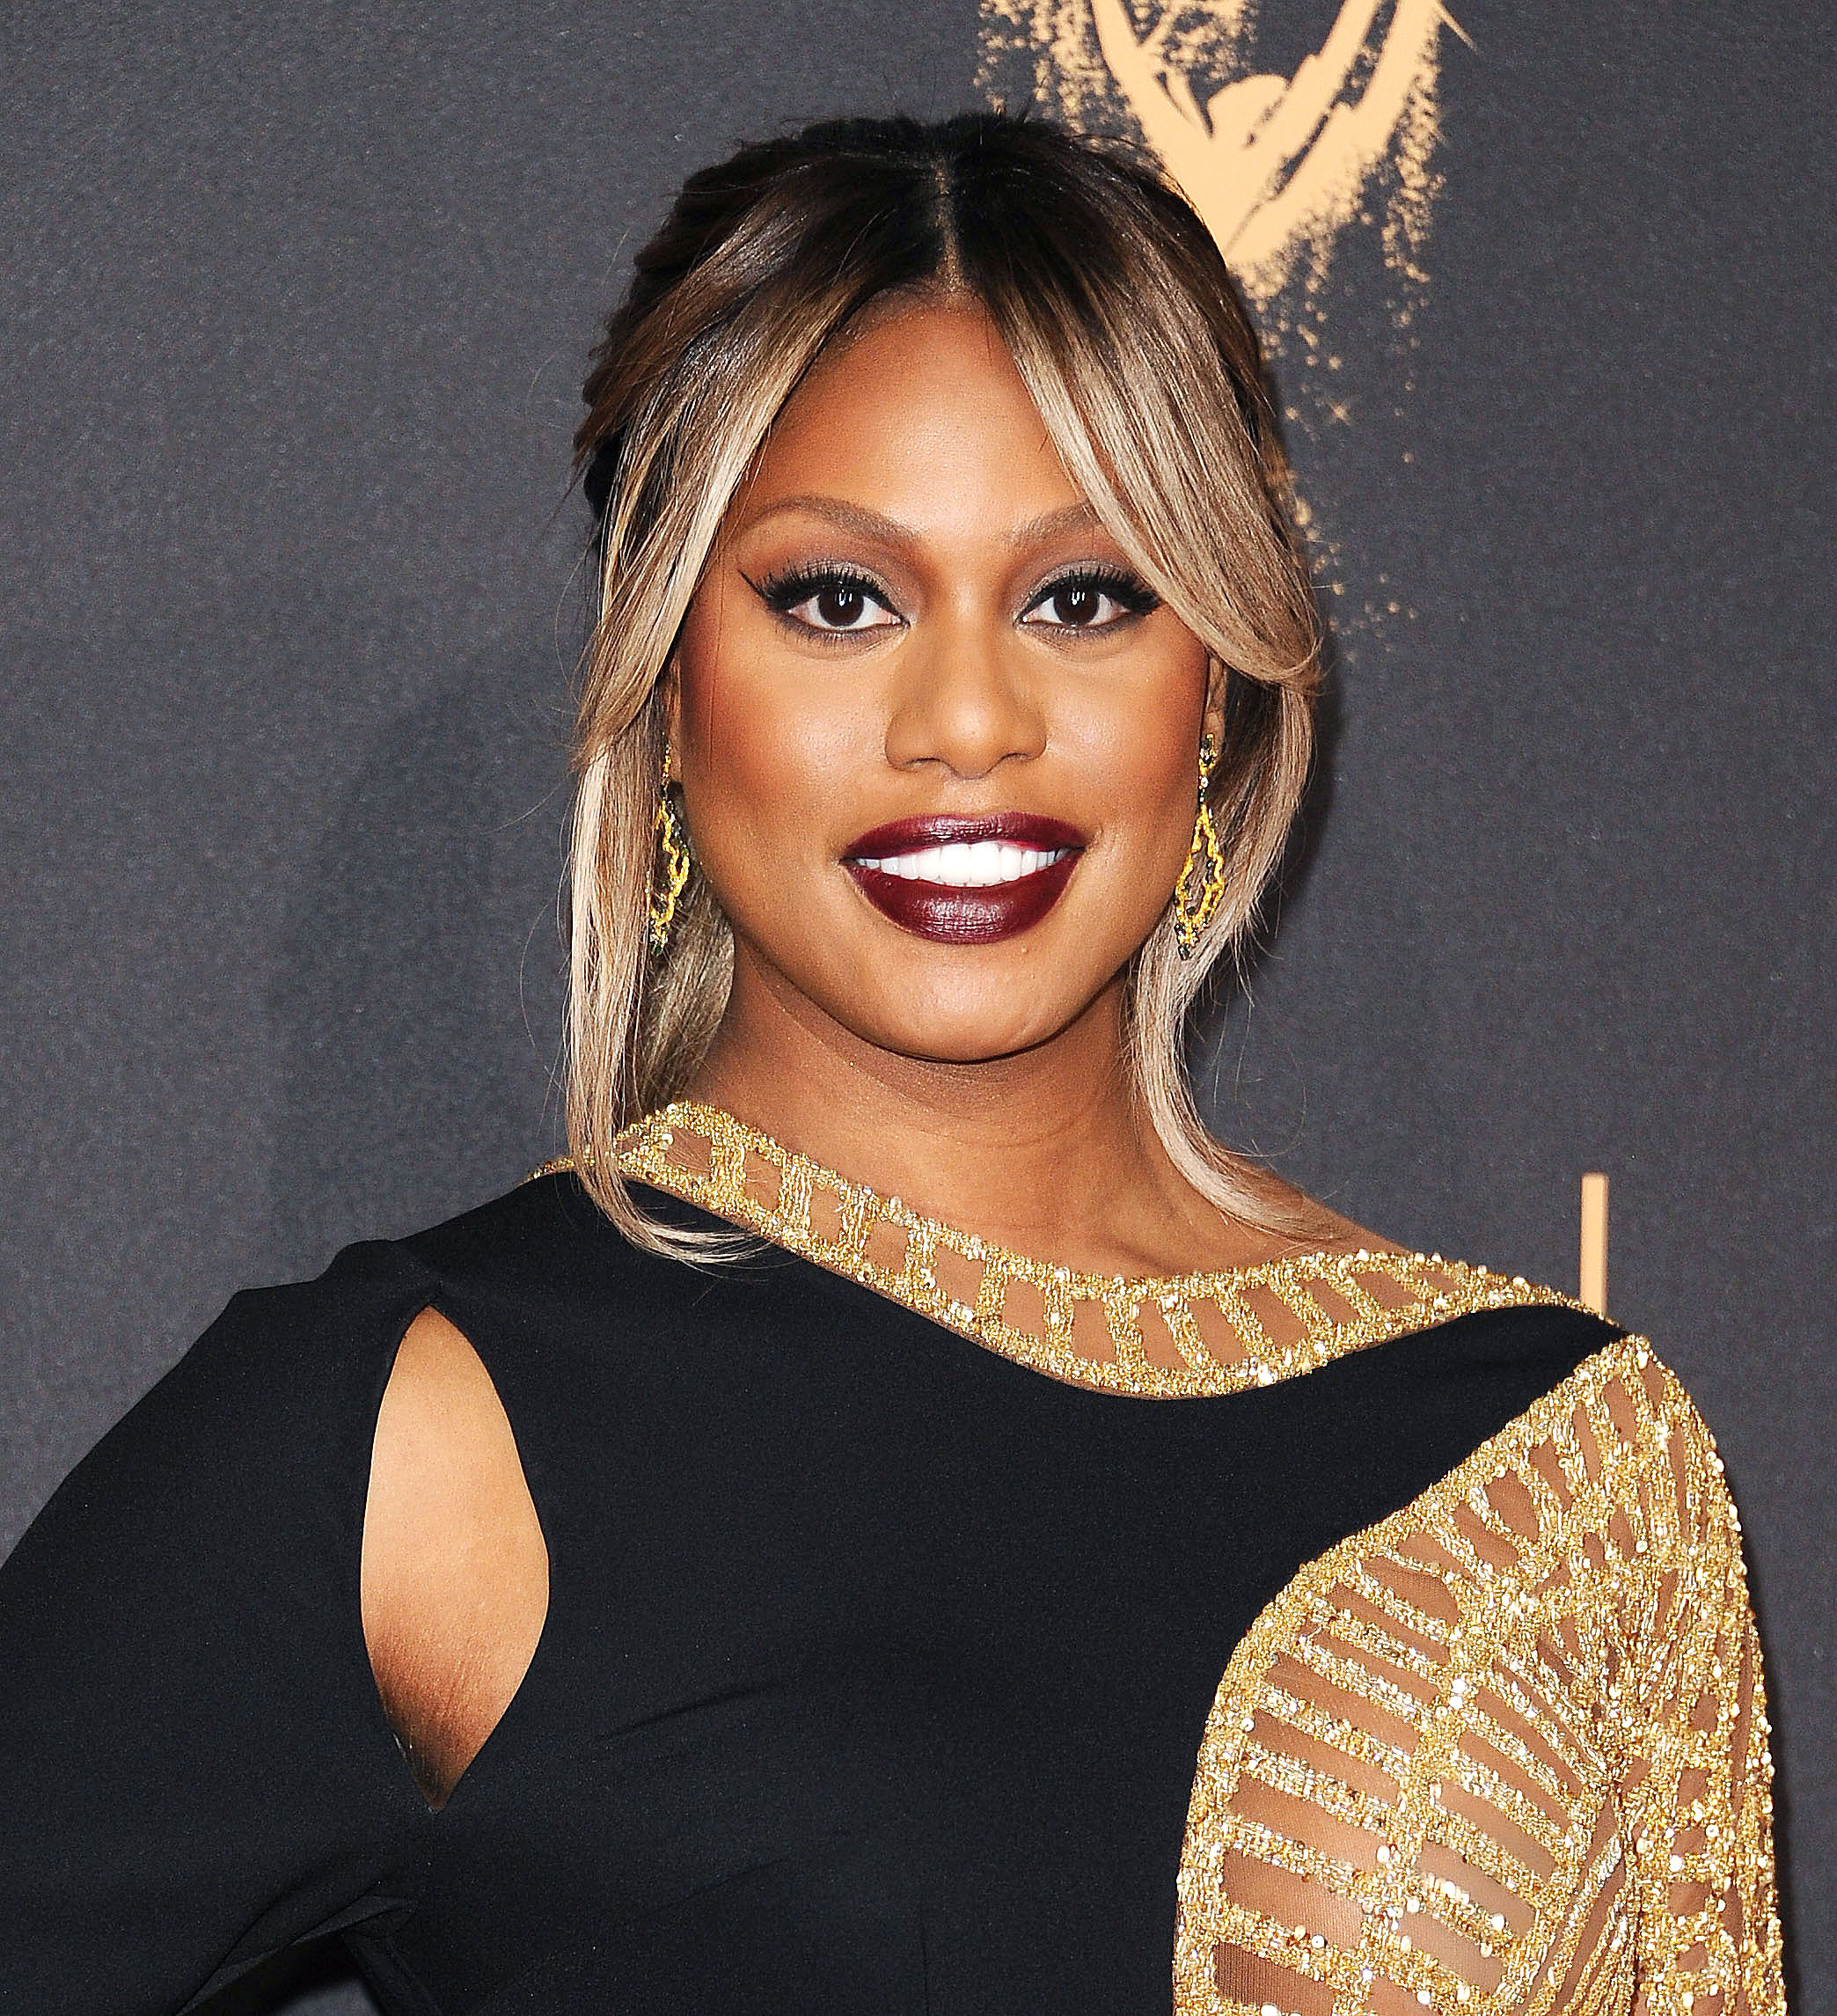 Selfie Laverne Cox naked (59 foto and video), Pussy, Paparazzi, Boobs, in bikini 2015